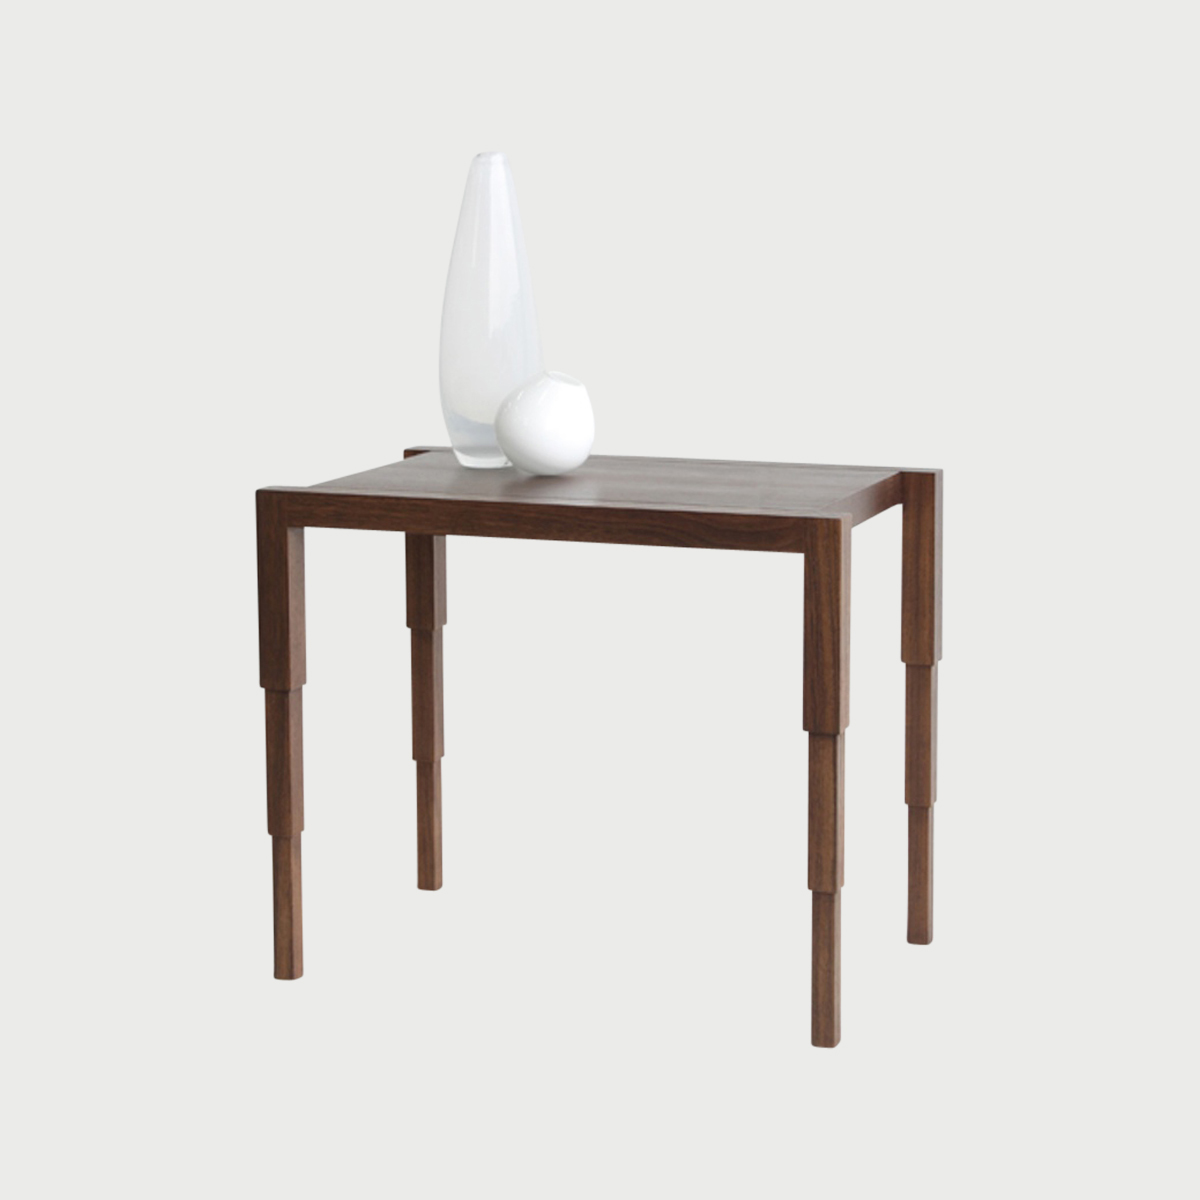 May chicagosidetable.product